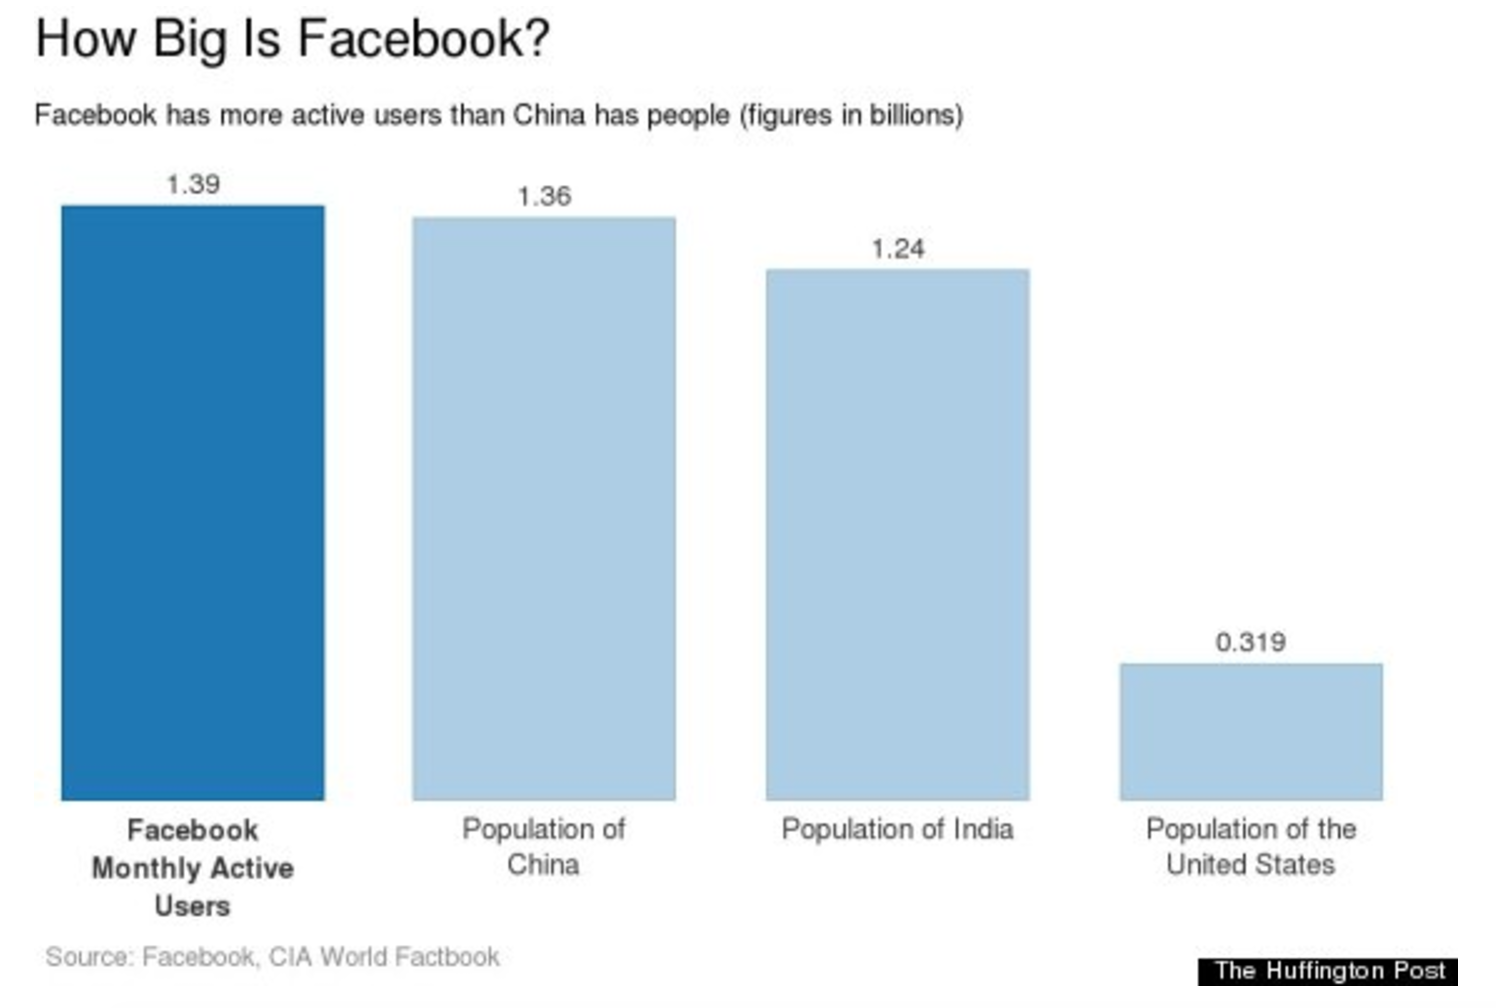 Facebook has more users than the largest country